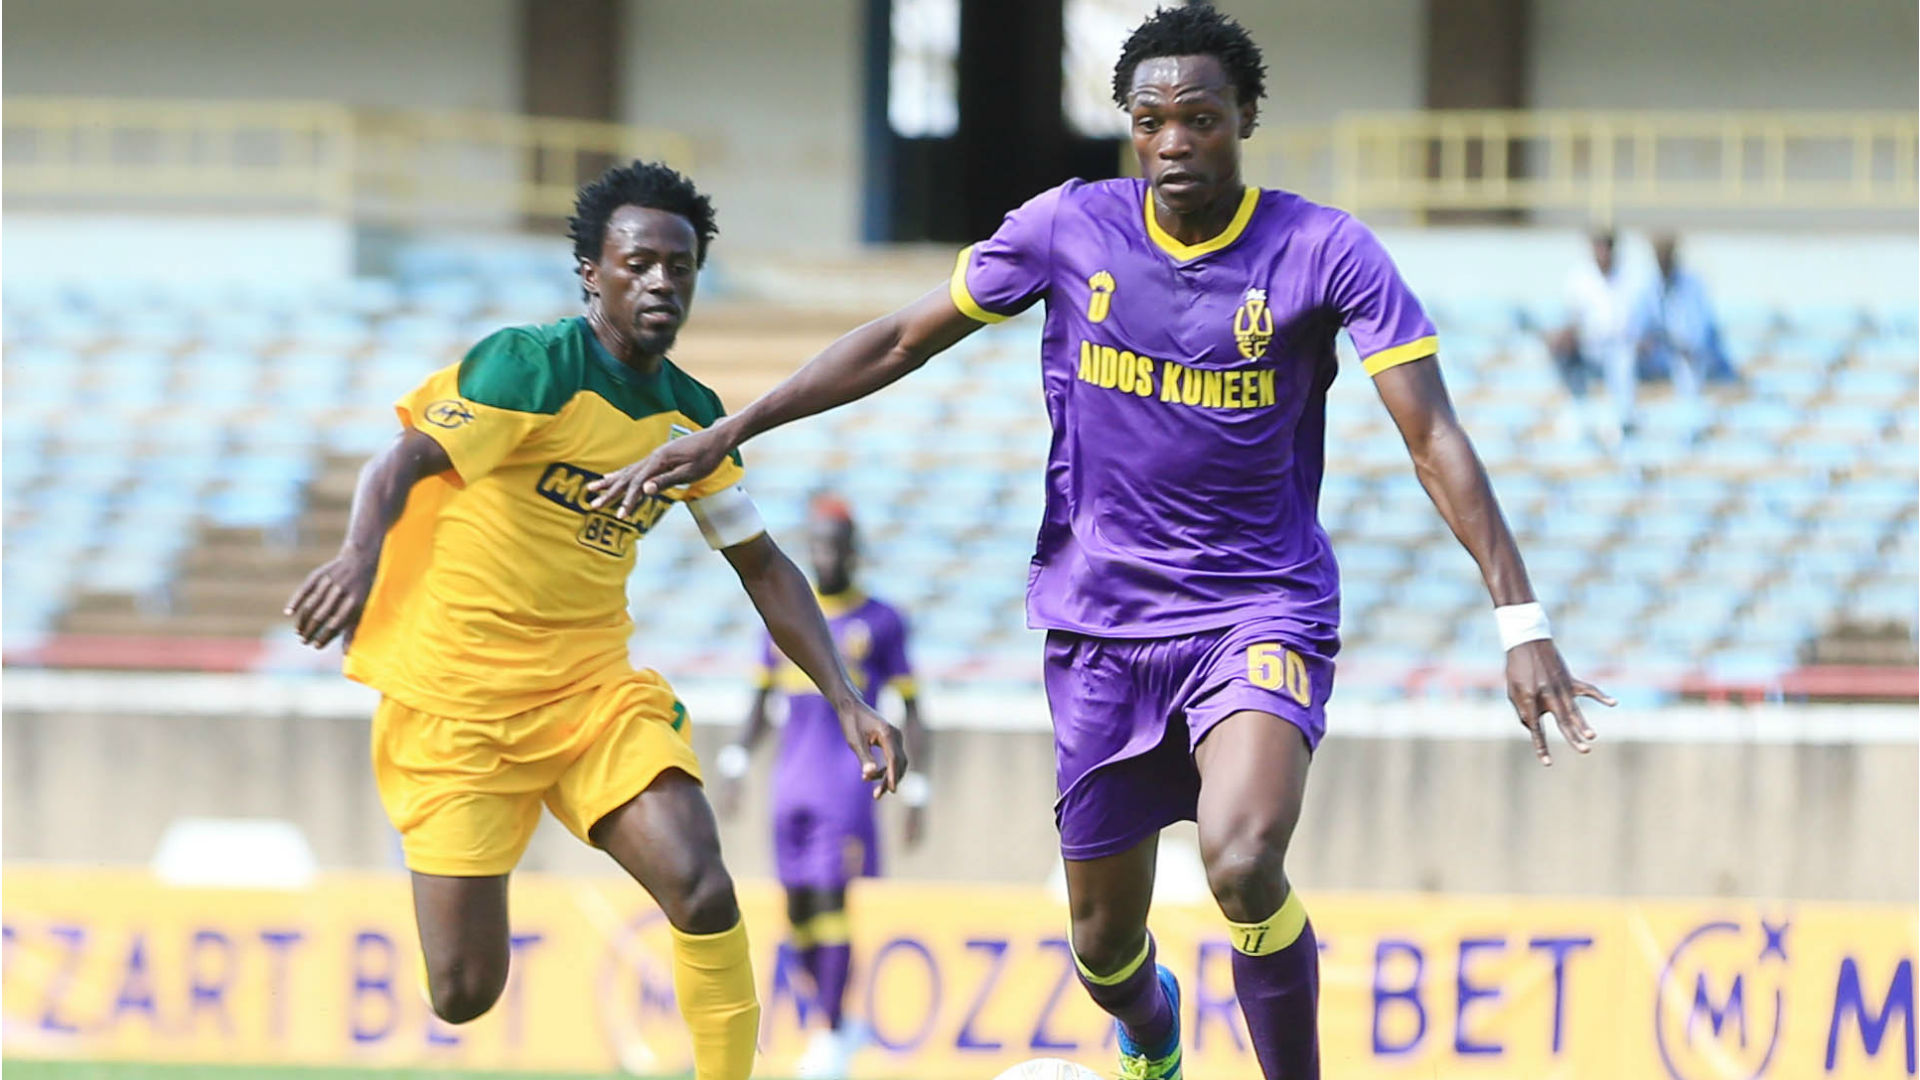 Afcon 2021 Qualifiers: Wazito FC's Musa surprised by maiden Harambee Stars call-up